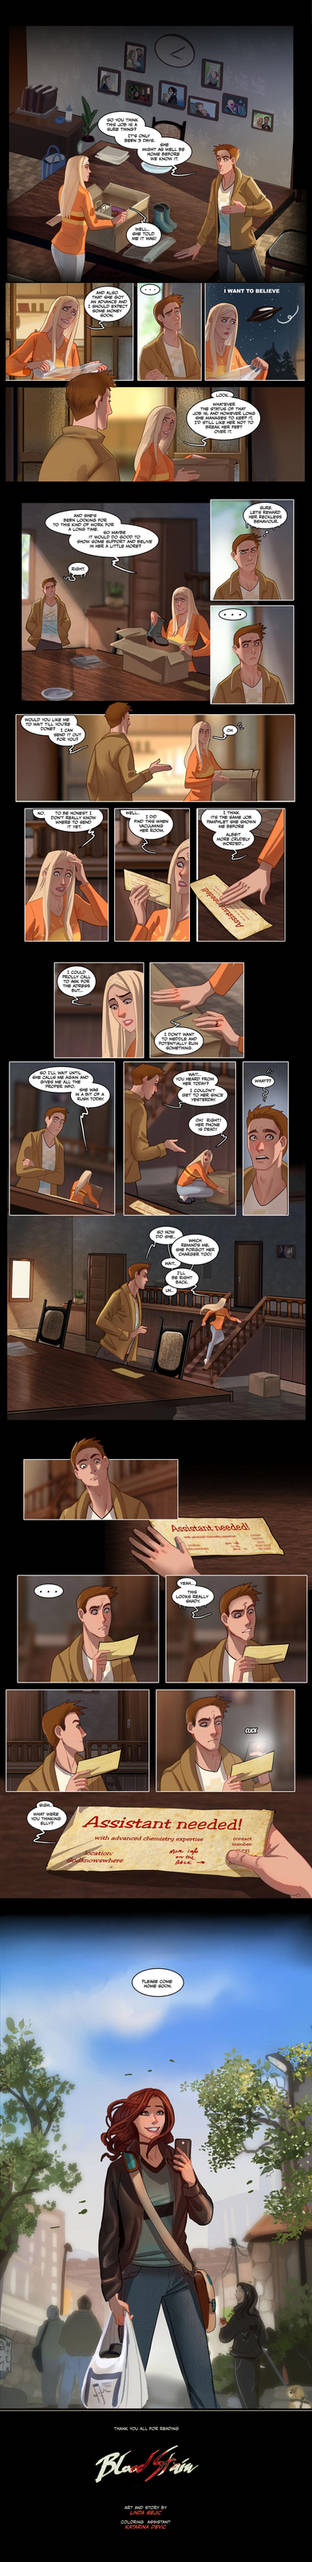 BS4 ep 91 home (p2) (pages 81-85)